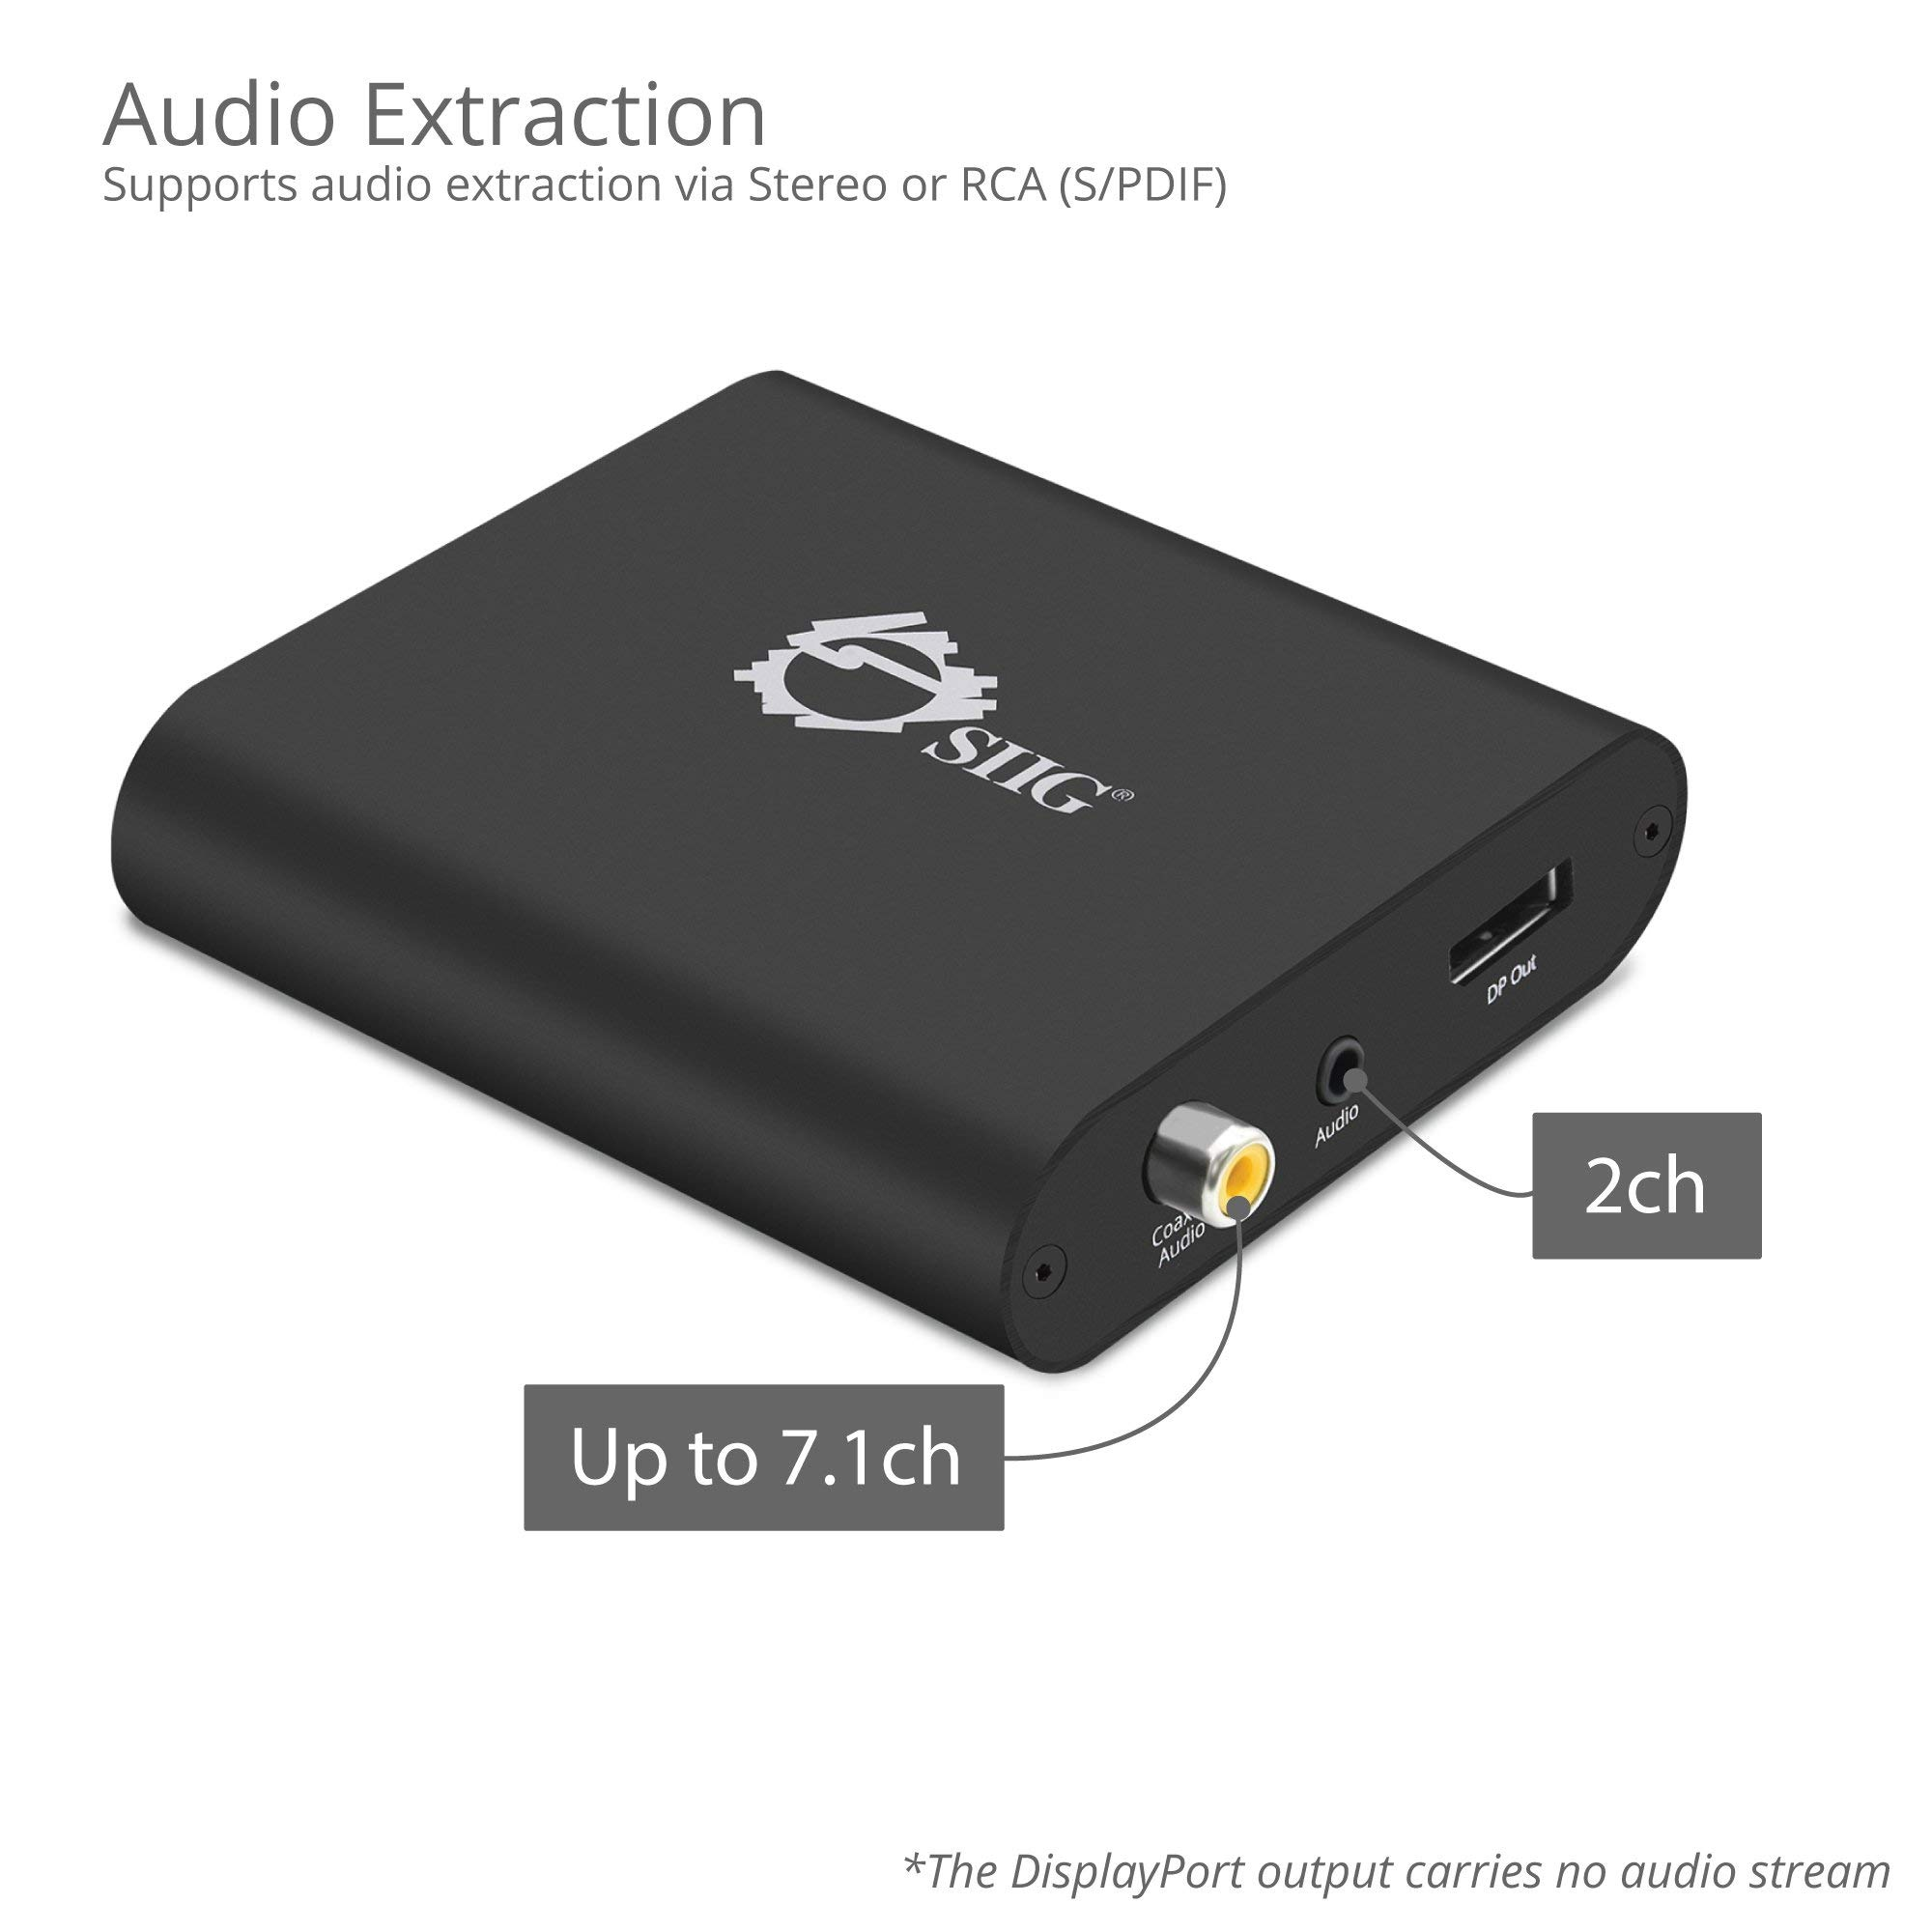 SIIG HDMI 2 0 to DisplayPort 1 2 Converter 4K@60Hz 4:4:4 HDMI to DP, 18Gbps  | HDCP 2 2 | EDID, Audio Extraction to Stereo & RCA, Firmware Upgradeable